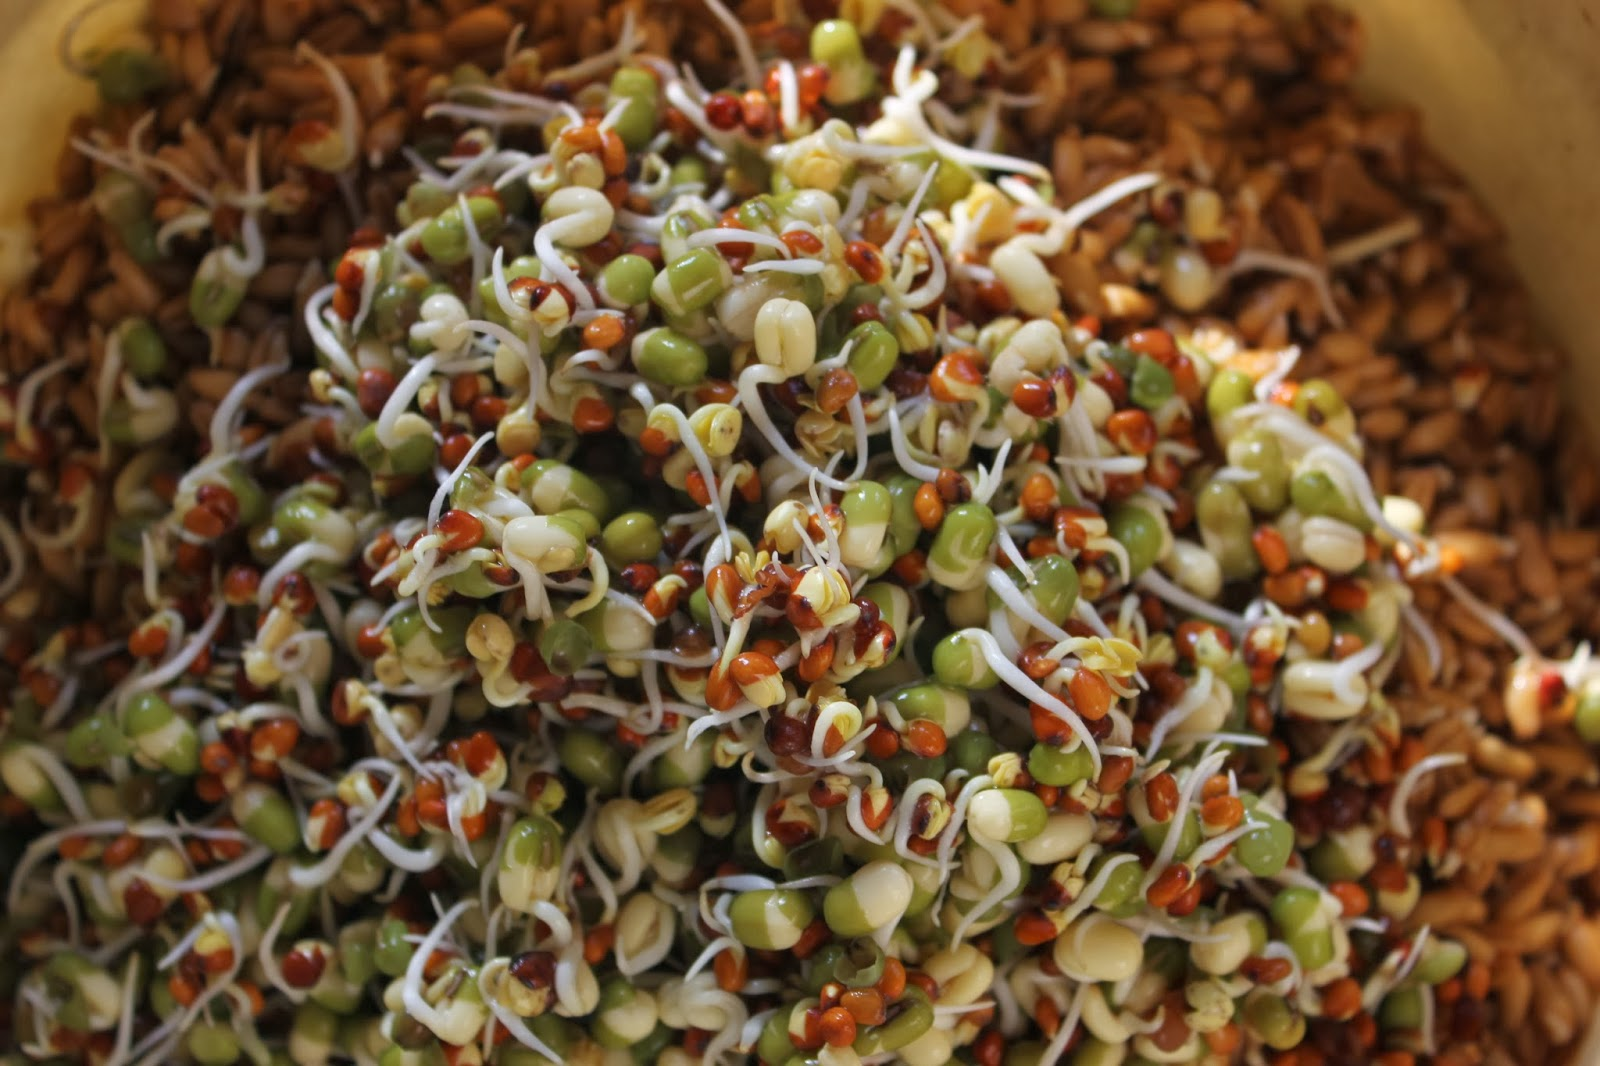 Why Should I Soak or Sprout Grains? And How Do I Do It?